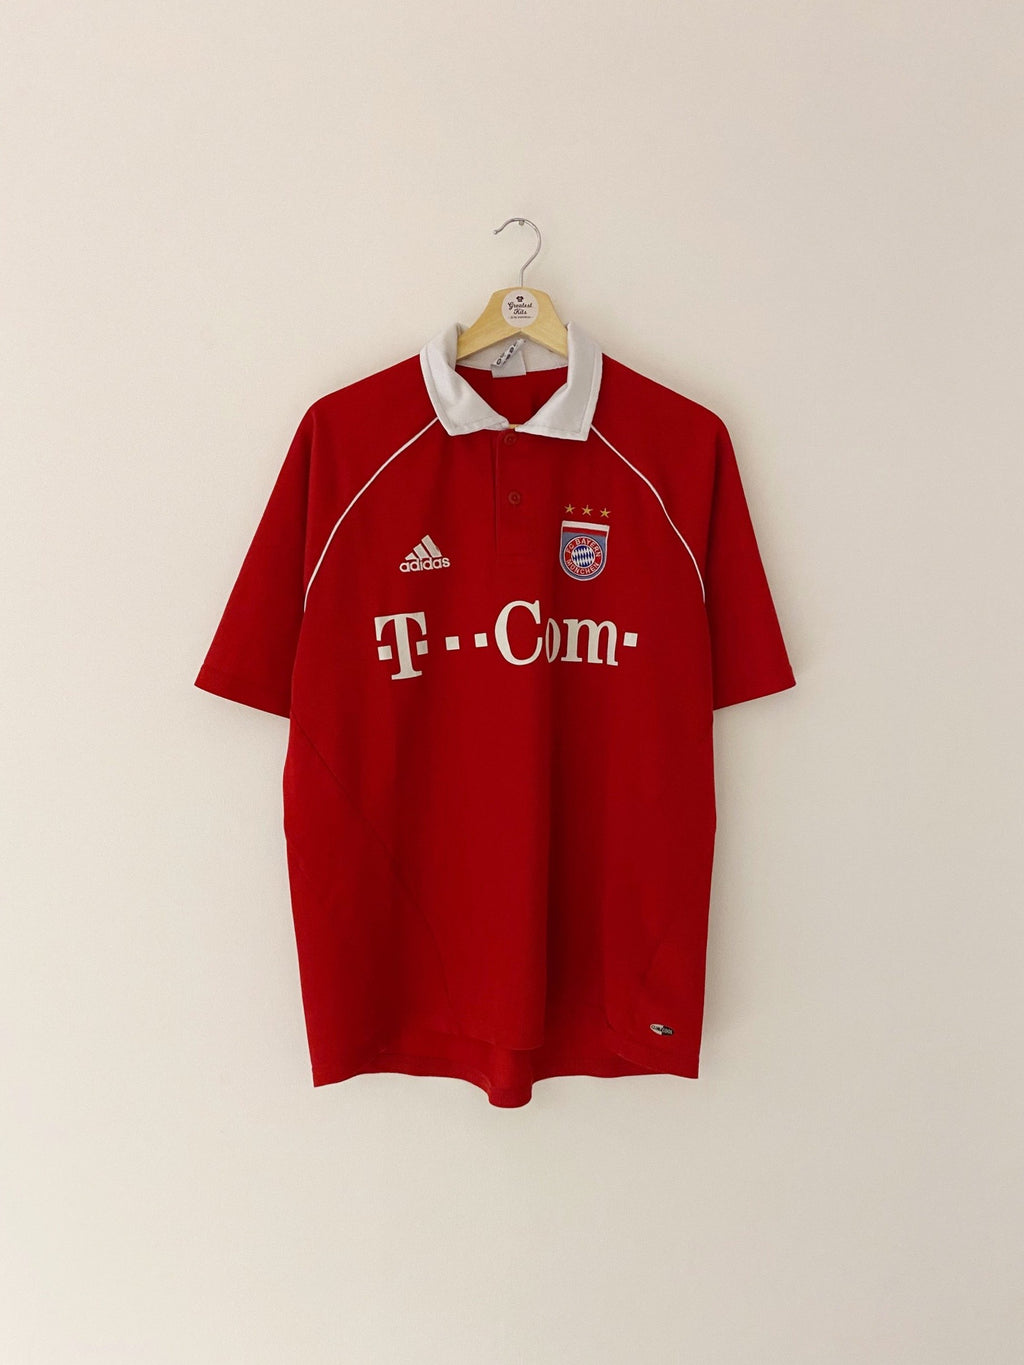 2005/06 Bayern Munich Home Shirt (M) 8.5/10